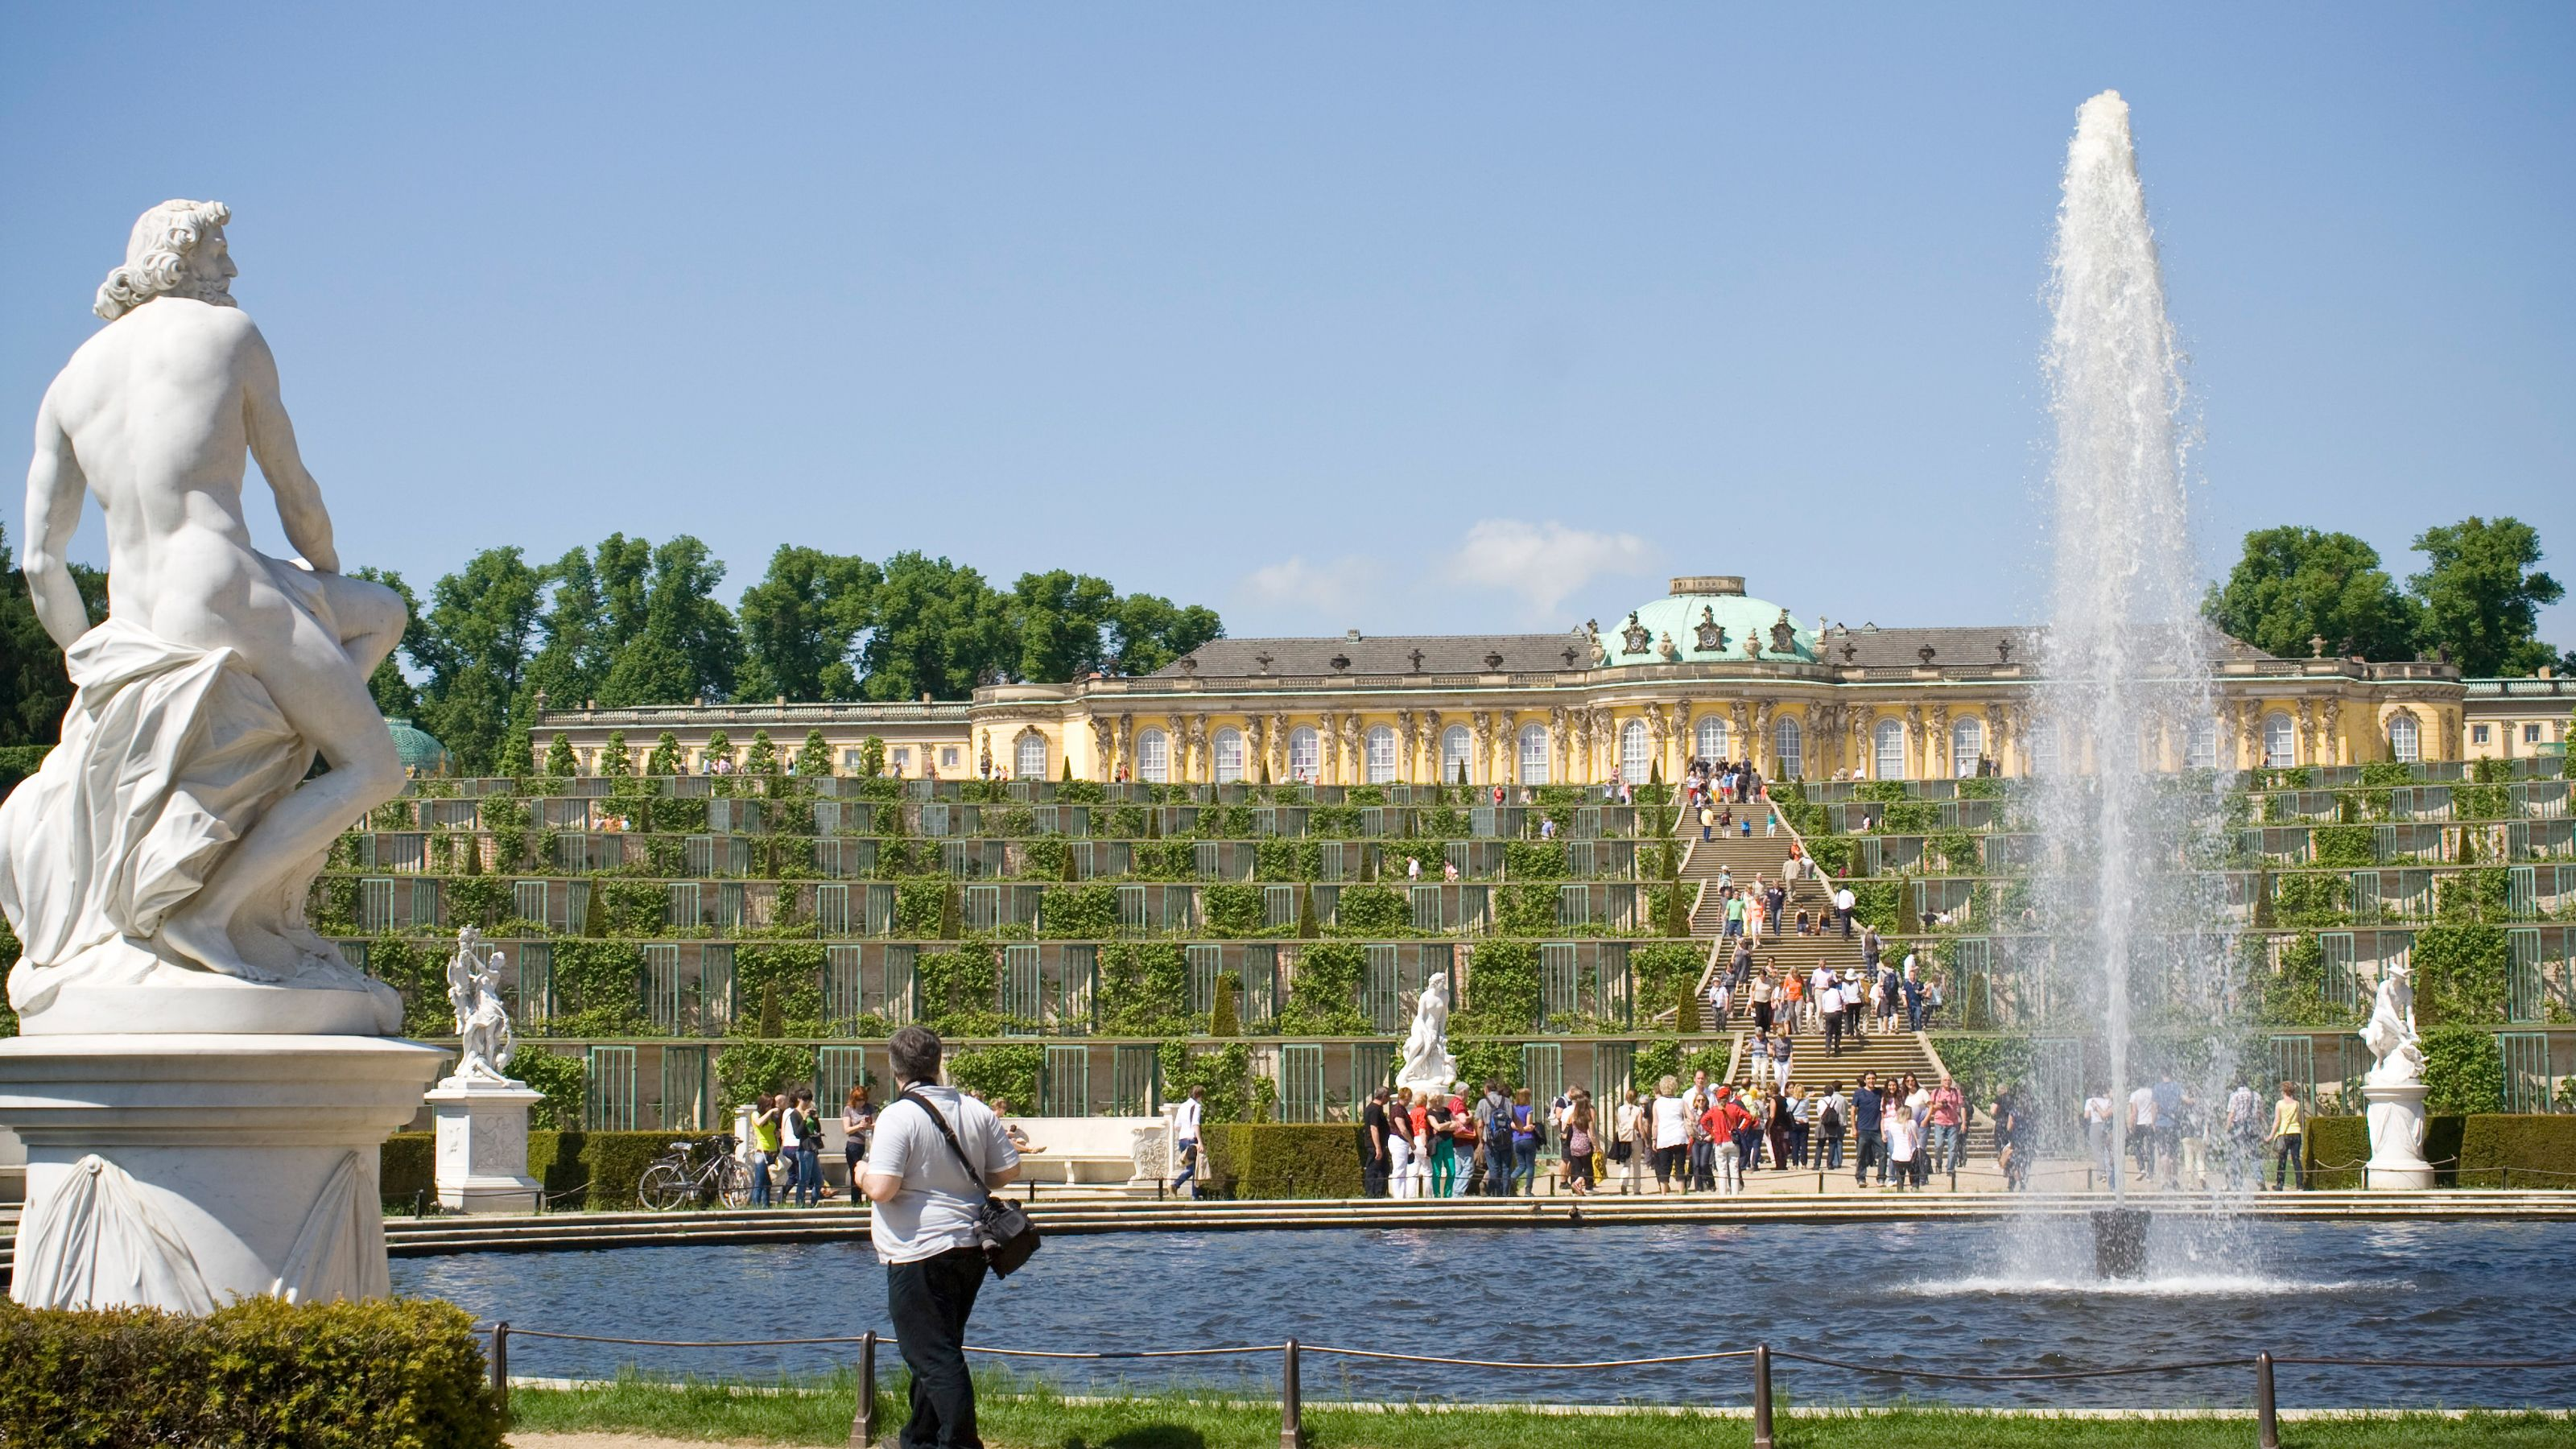 Statues and fountains in the gardens of Sanssouci Palace in Potsdam